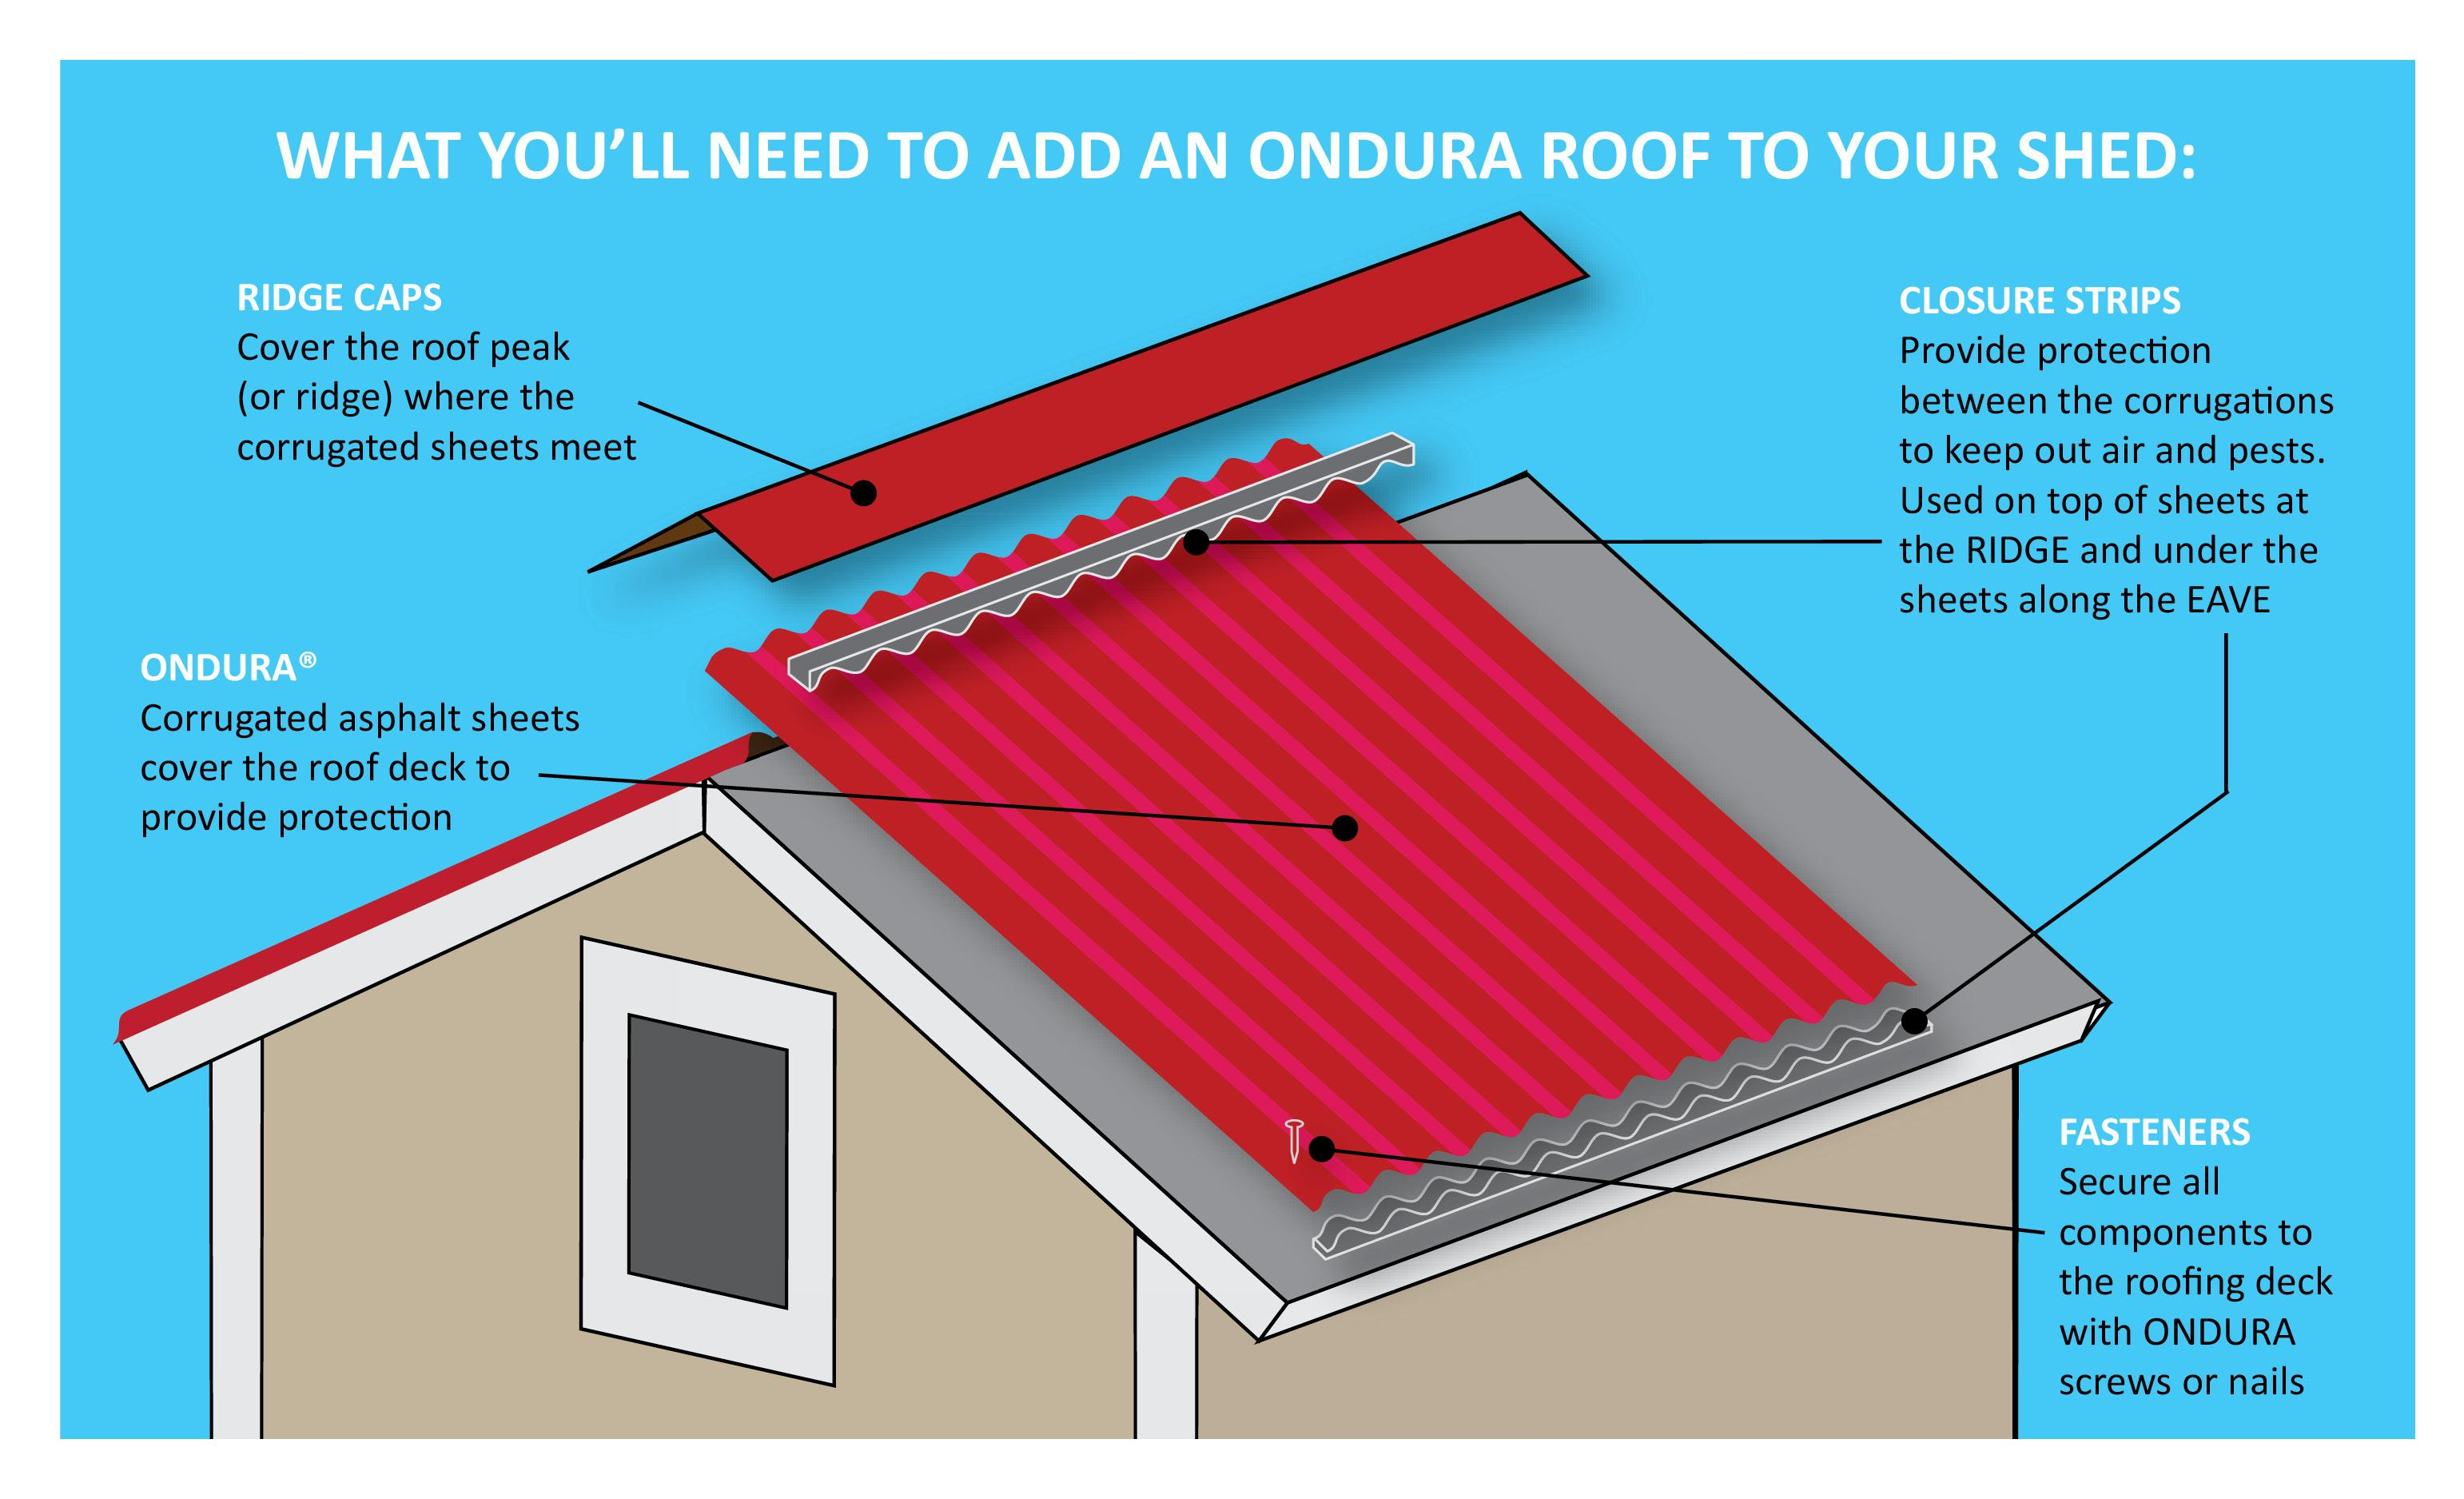 Ondura 100 Corrugated Asphalt Roofing 10 Pack Gray